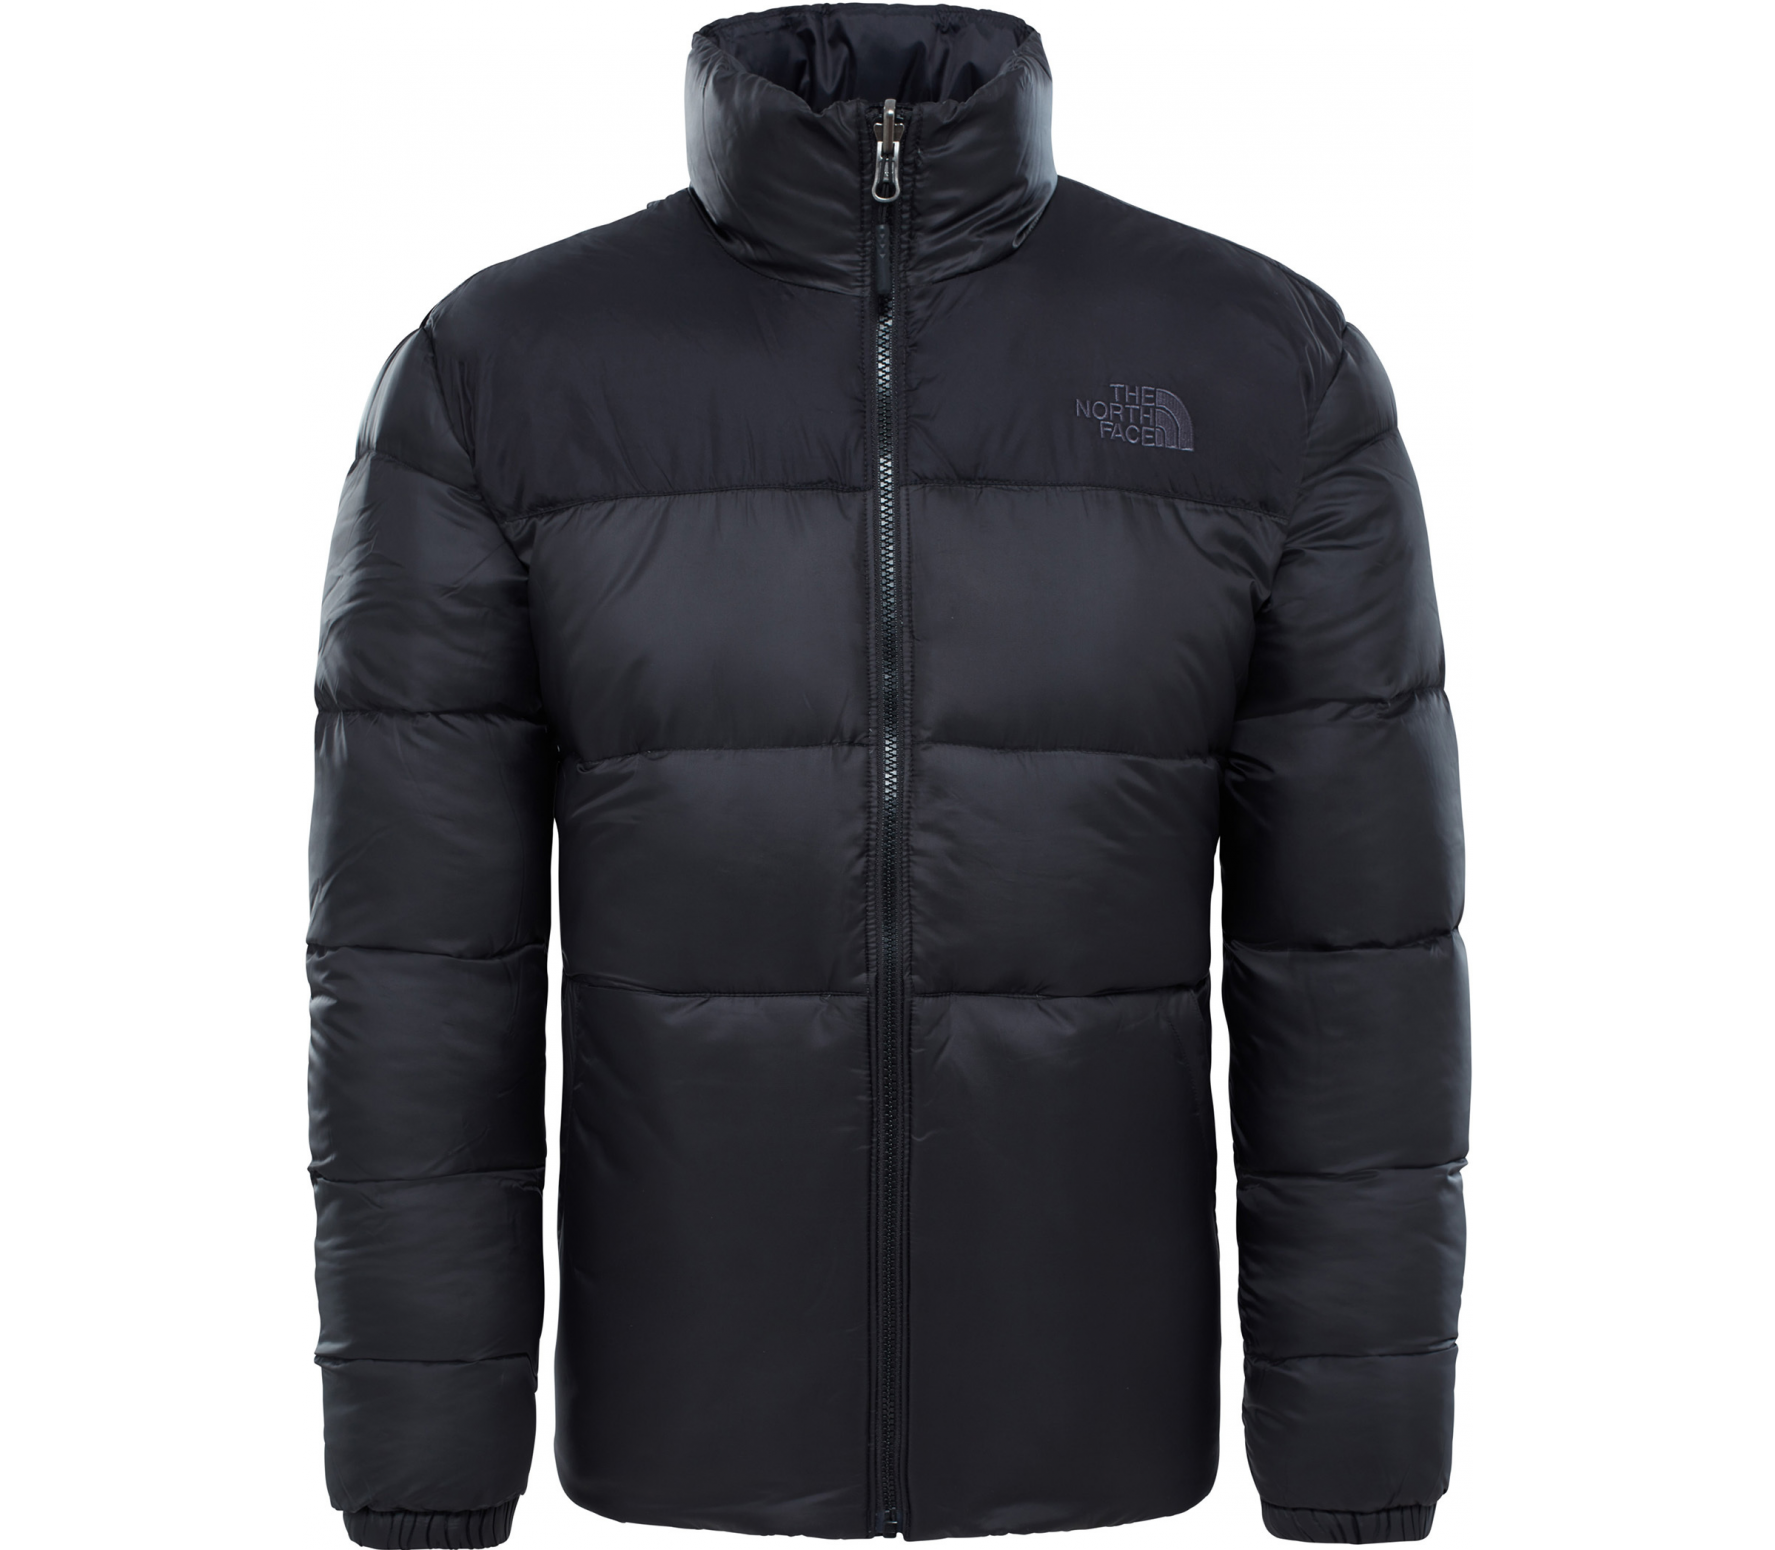 2706920aed71 The North Face - Nuptse III men s down jacket (black) - buy it at ...